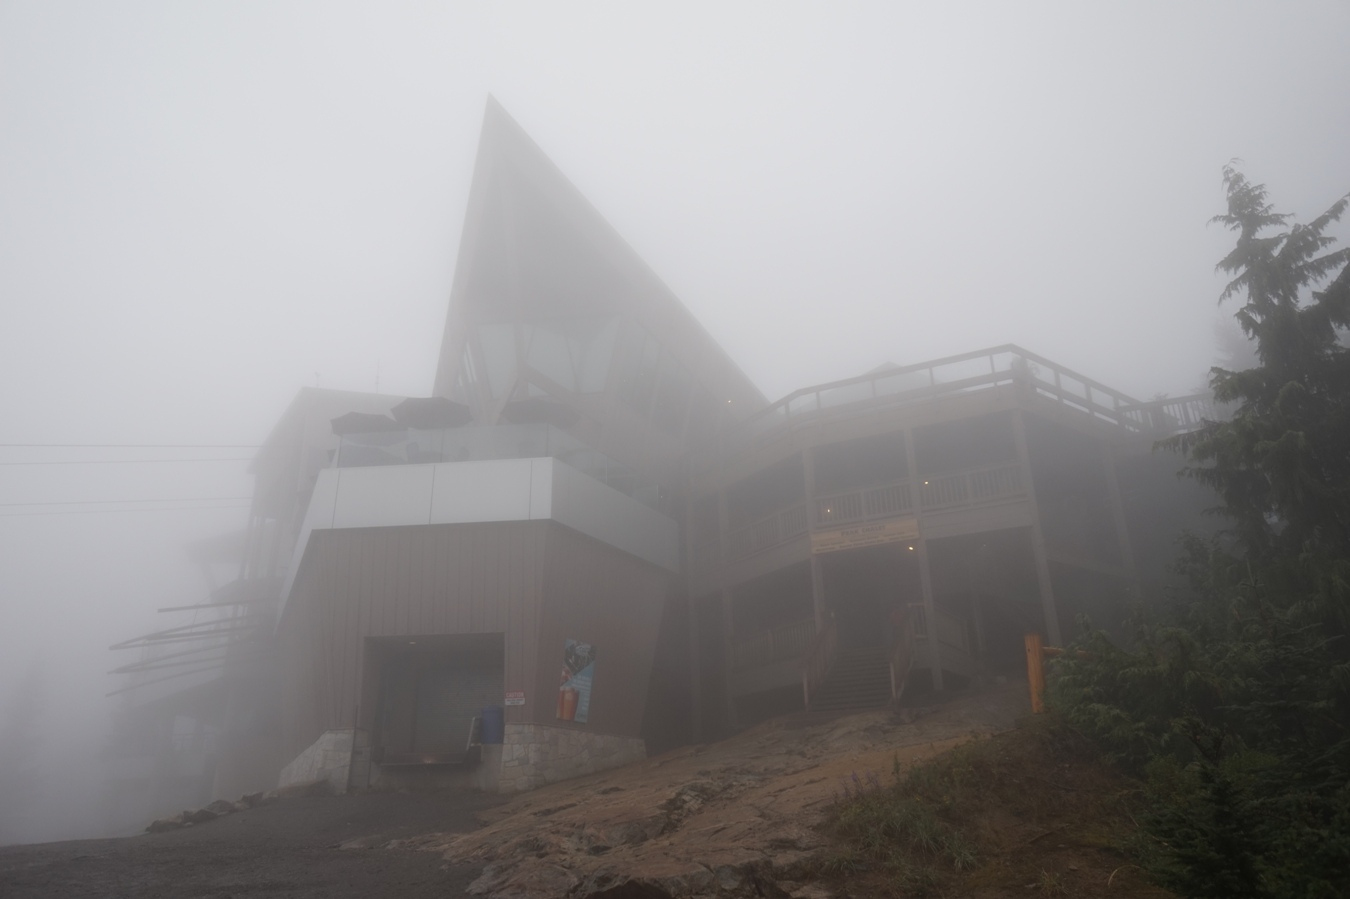 Das Peak Chalet am Grouse Mountain im dichten Nebel.